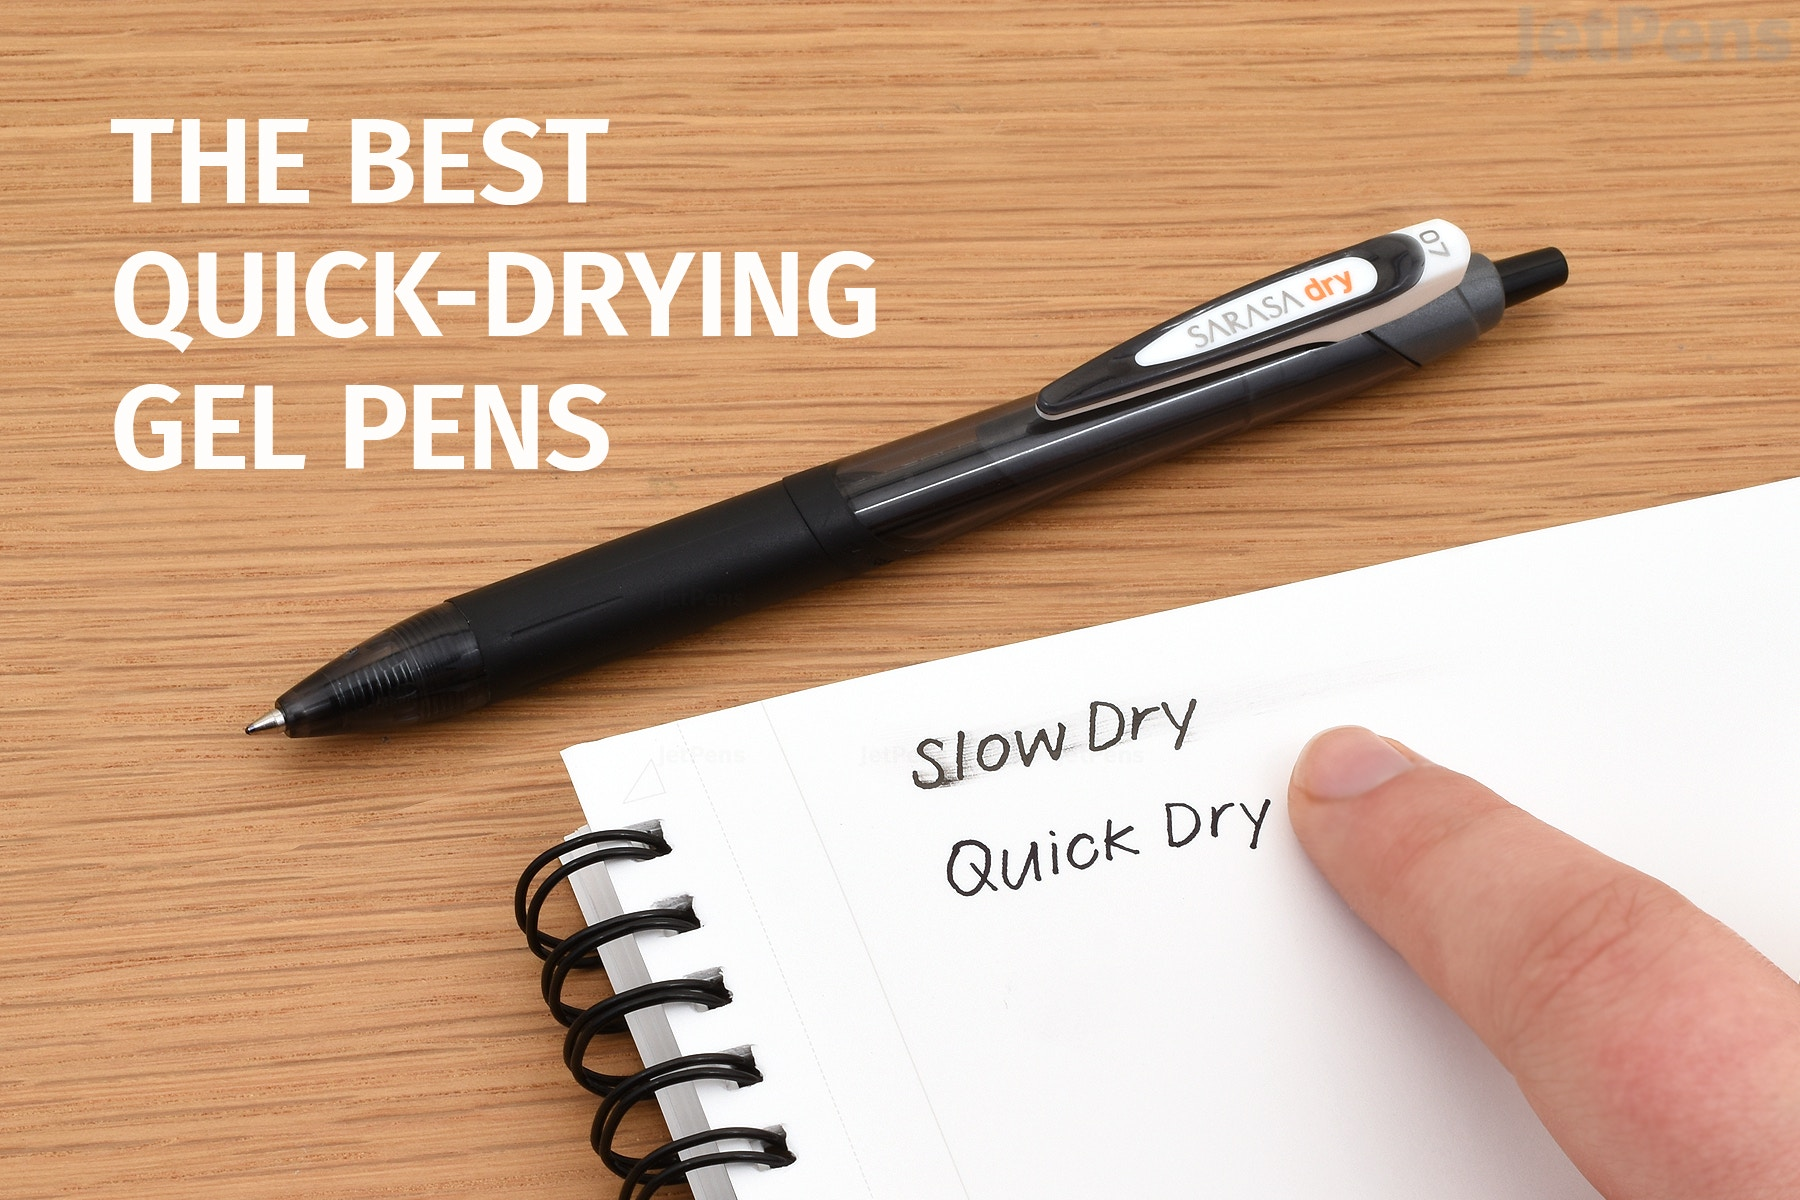 The Best Quick-Drying Gel Pens, 2019 Review | JetPens